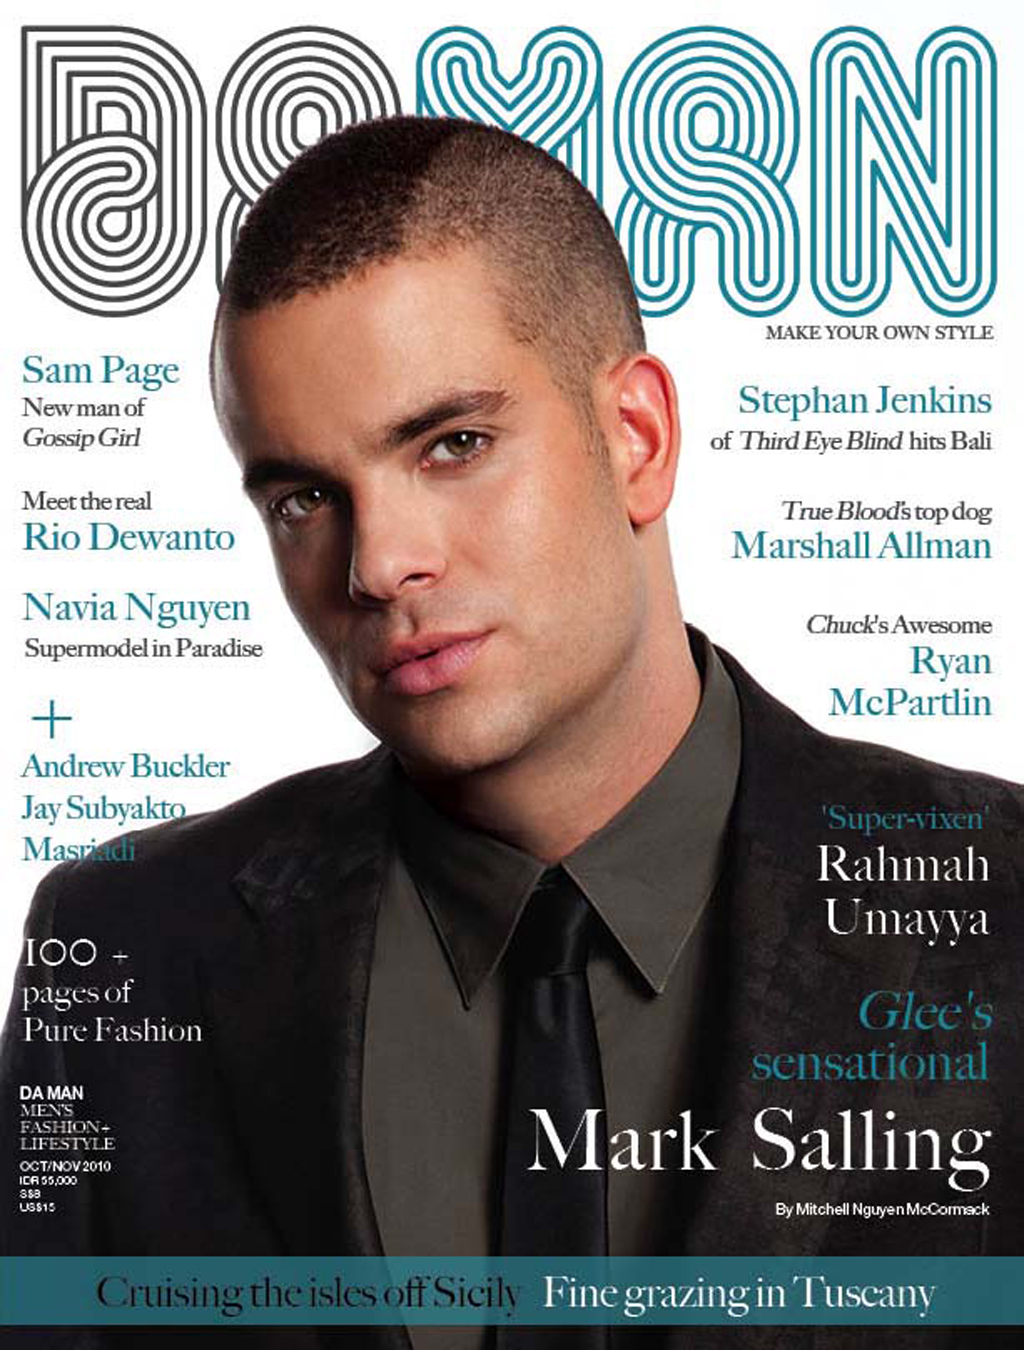 Cover DA MAN Oct/Nov 2010